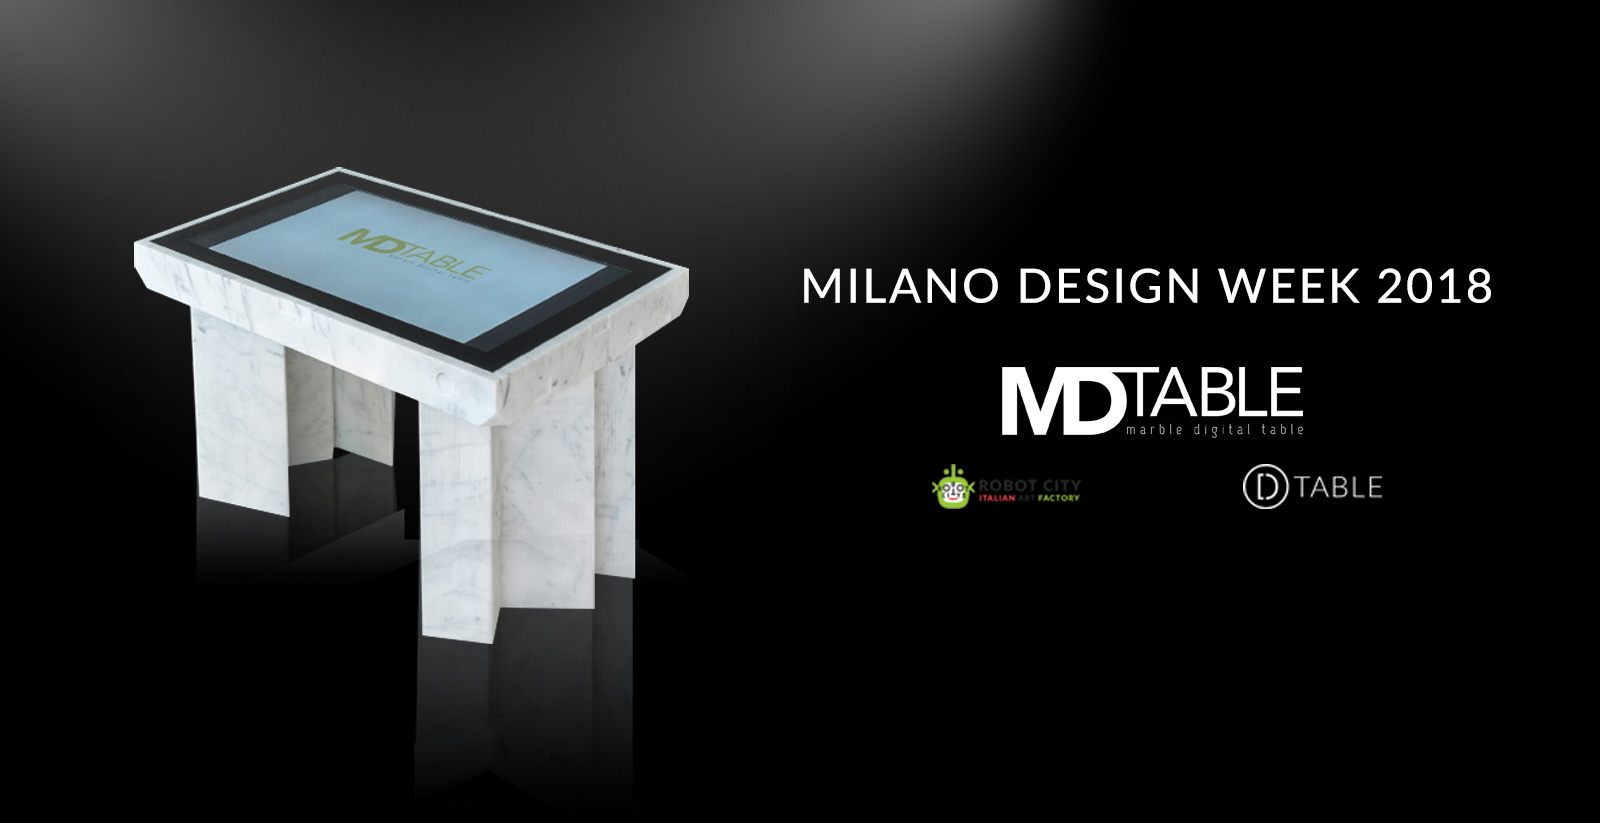 MD-TABLE Design Week Milano 2018